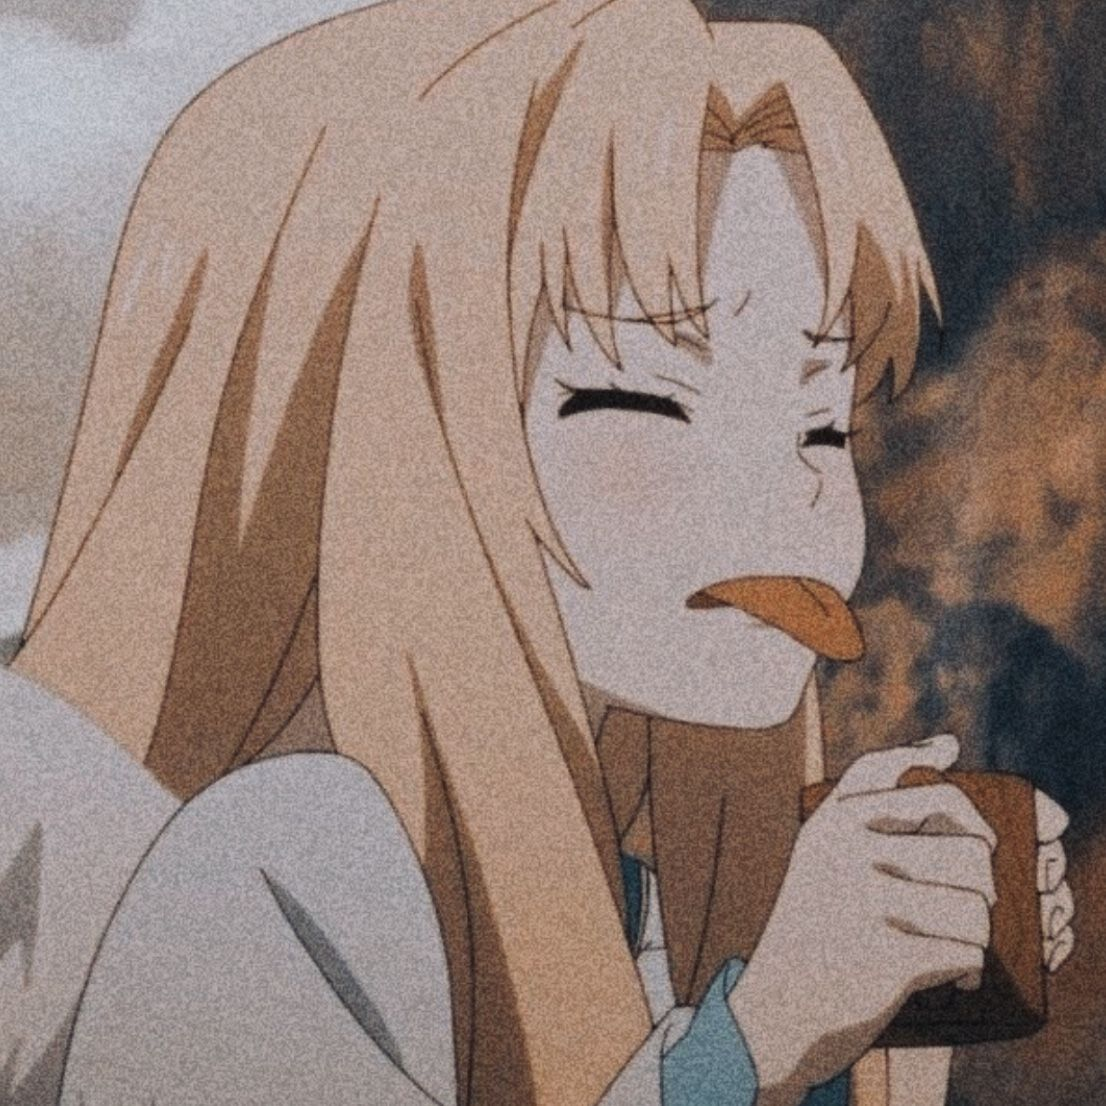 Pin By Ada On Anime 7w7 In 2021 Aesthetic Anime Cute Anime Character Cartoon Profile Pics